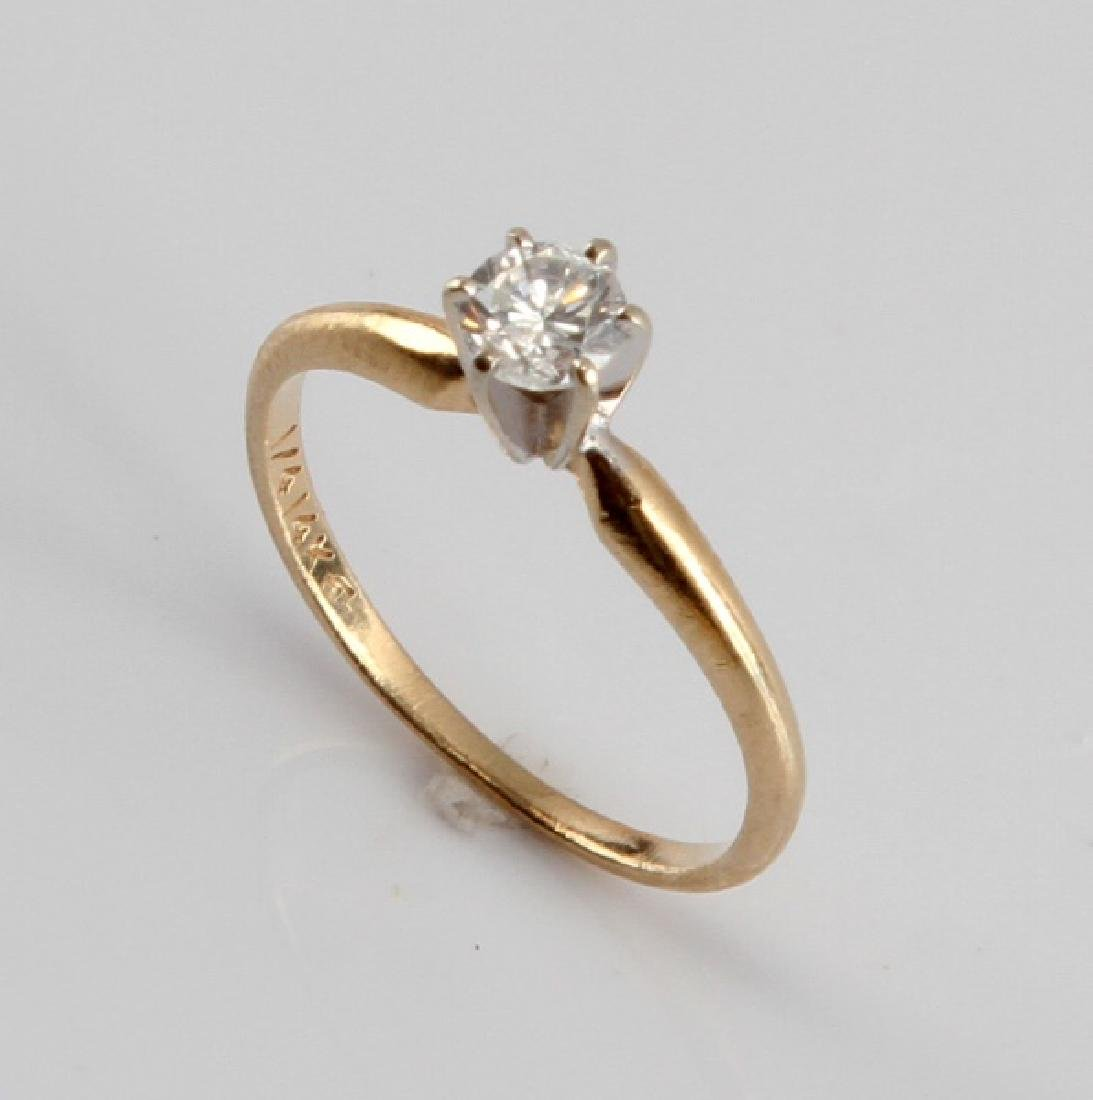 14KT GOLD 1/4CT DIAMOND SOLITAIRE ENGAGEMENT RING - 2